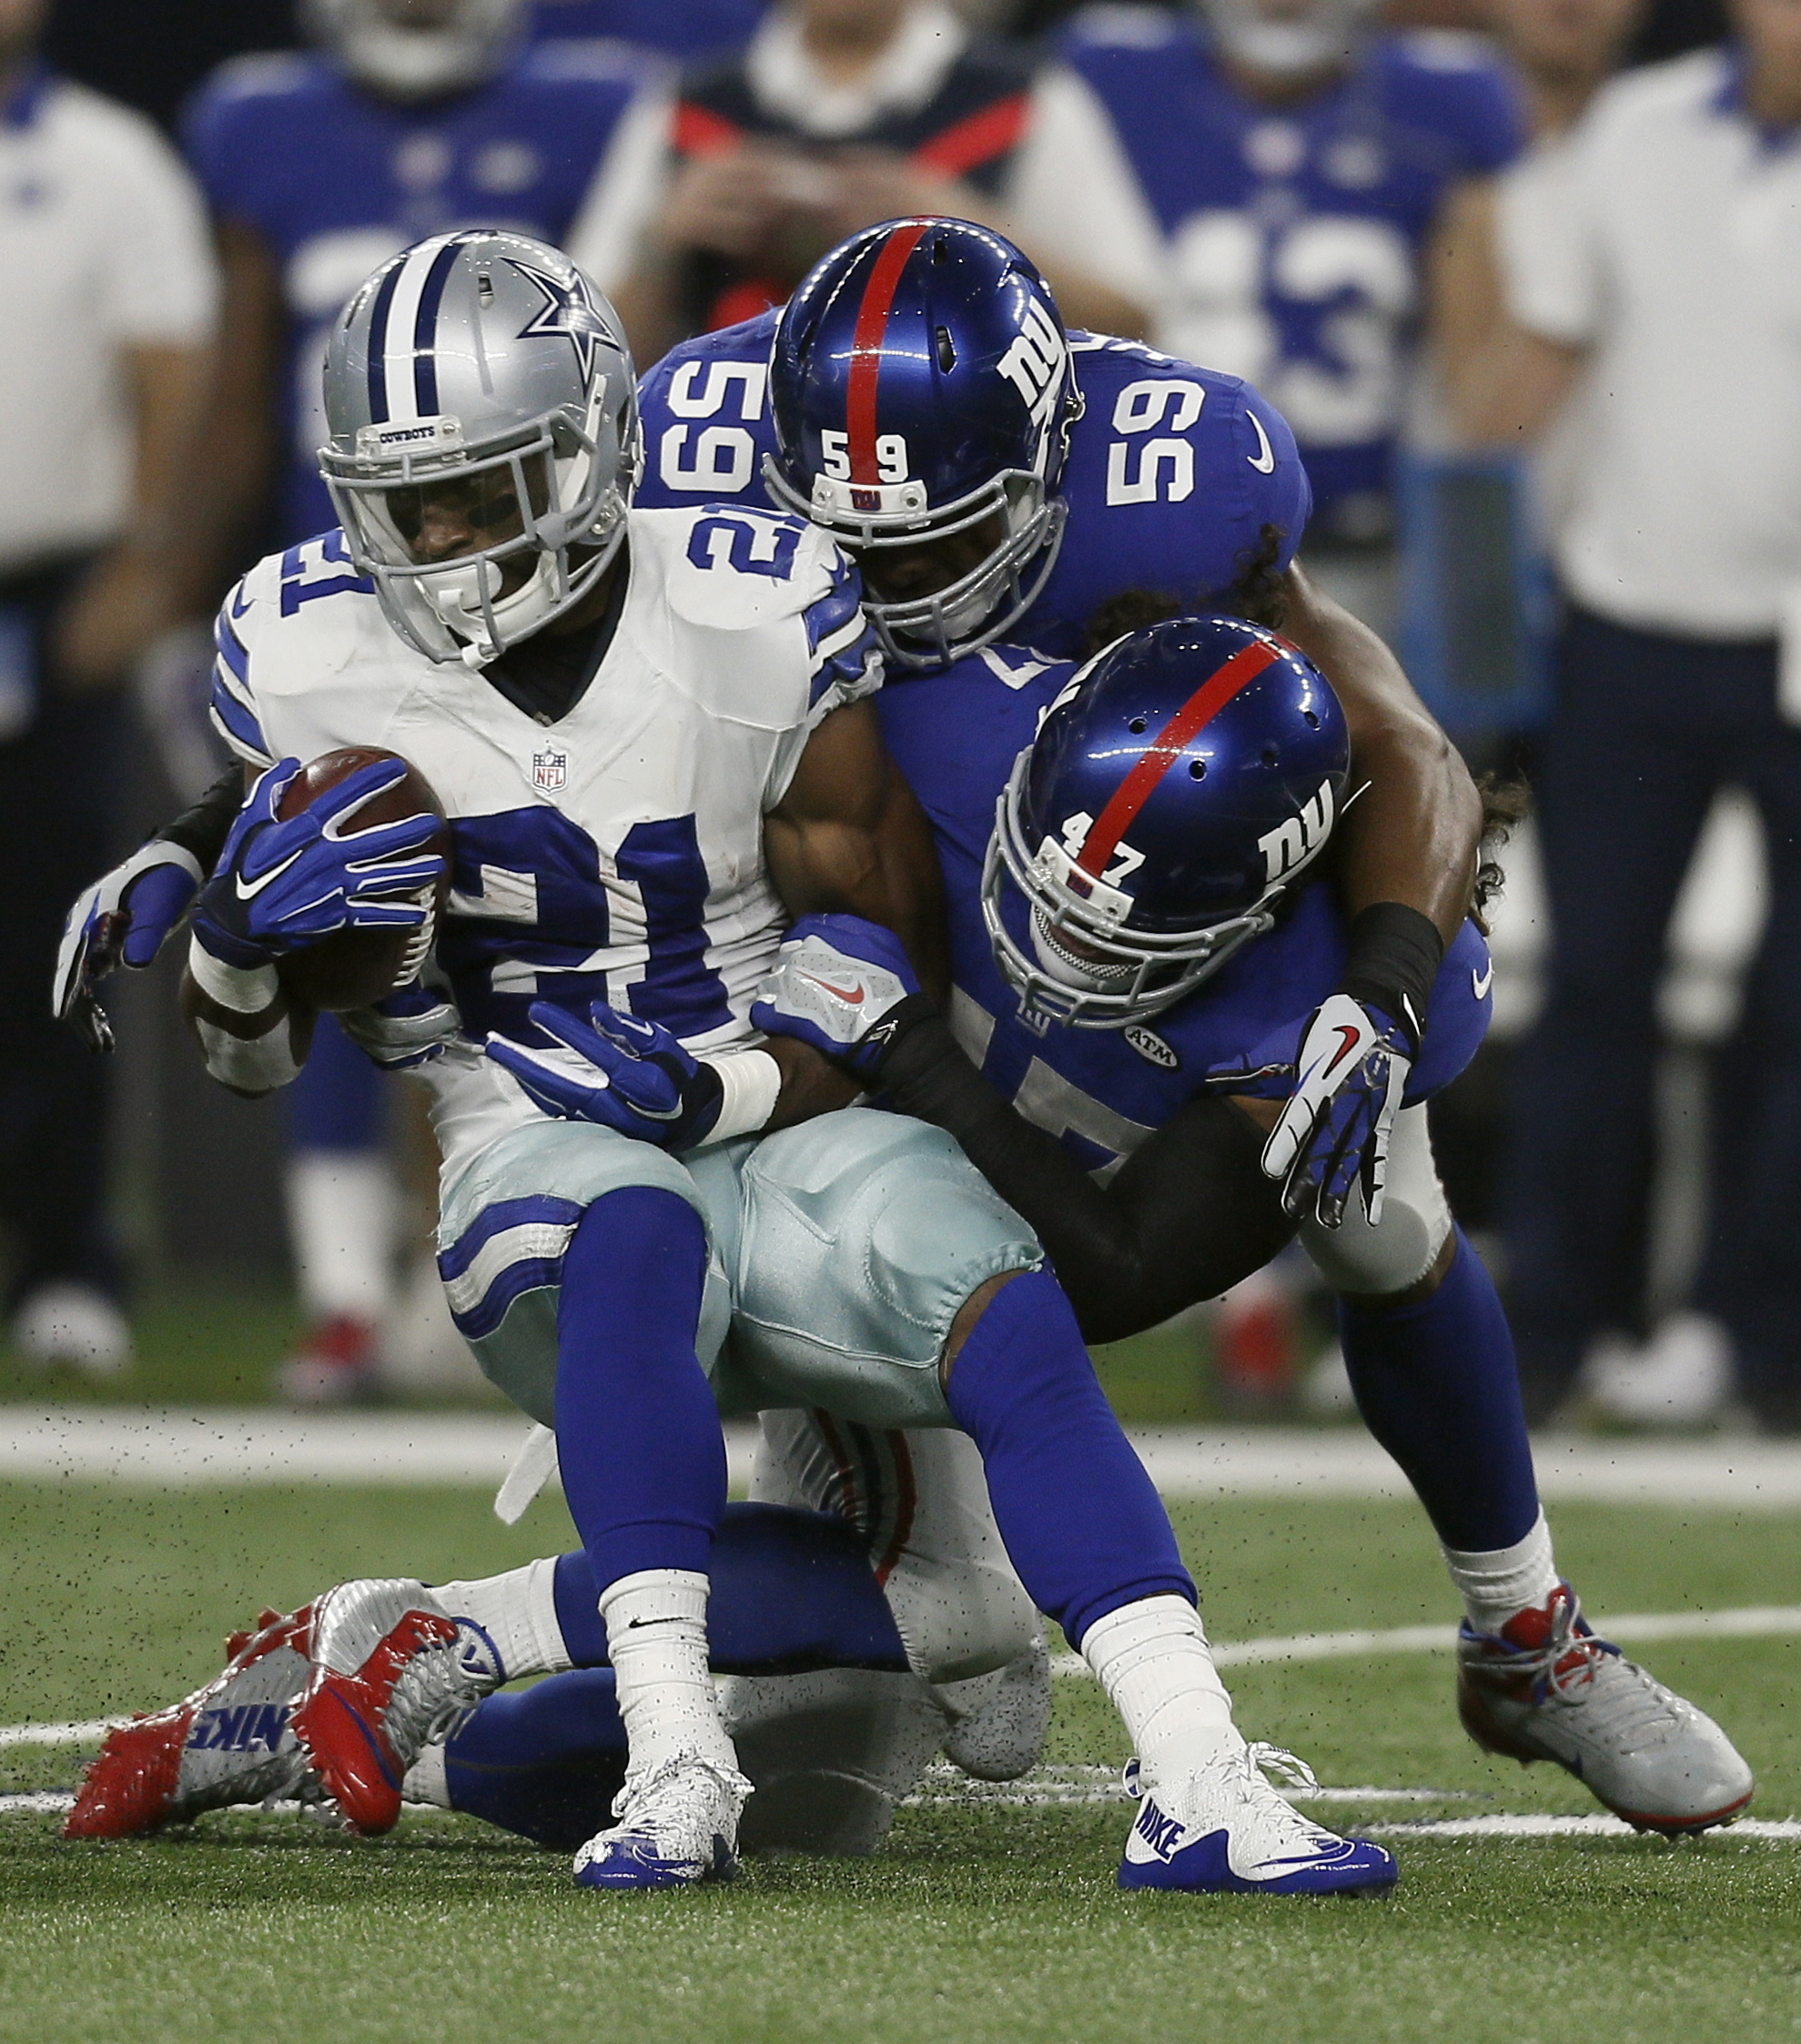 Dallas Cowboys running back Joseph Randle (21) is tackled by New York Giants outside linebacker Devon Kennard (59) and linebacker Uani' Unga (47) during the first half of an NFL football game Sunday, Sept. 13, 2015, in Arlington, Texas. (AP Photo/Brandon